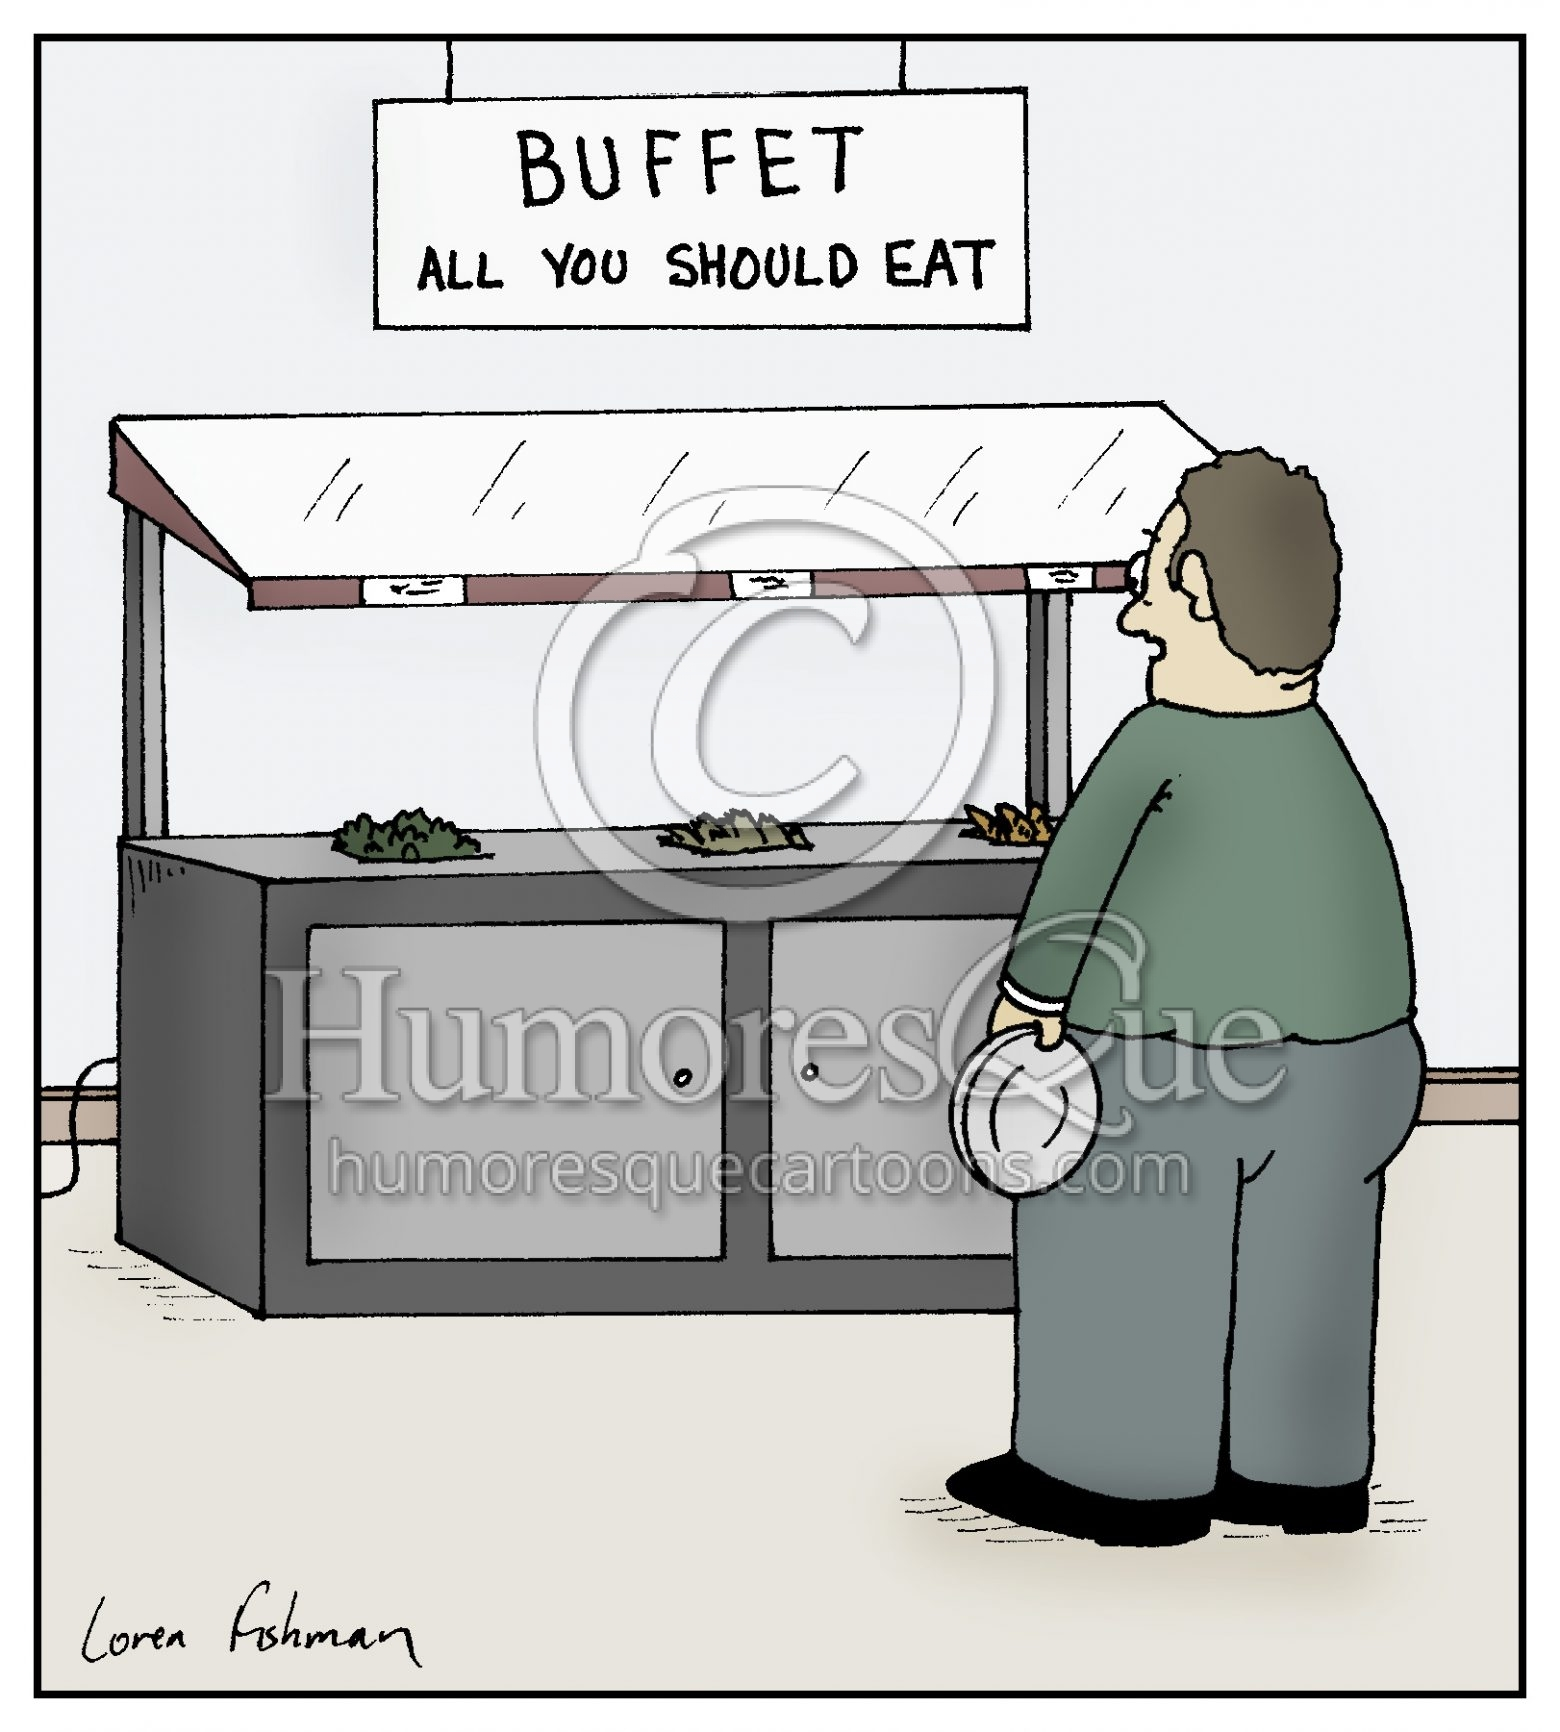 buffet overweight and obesity cartoon